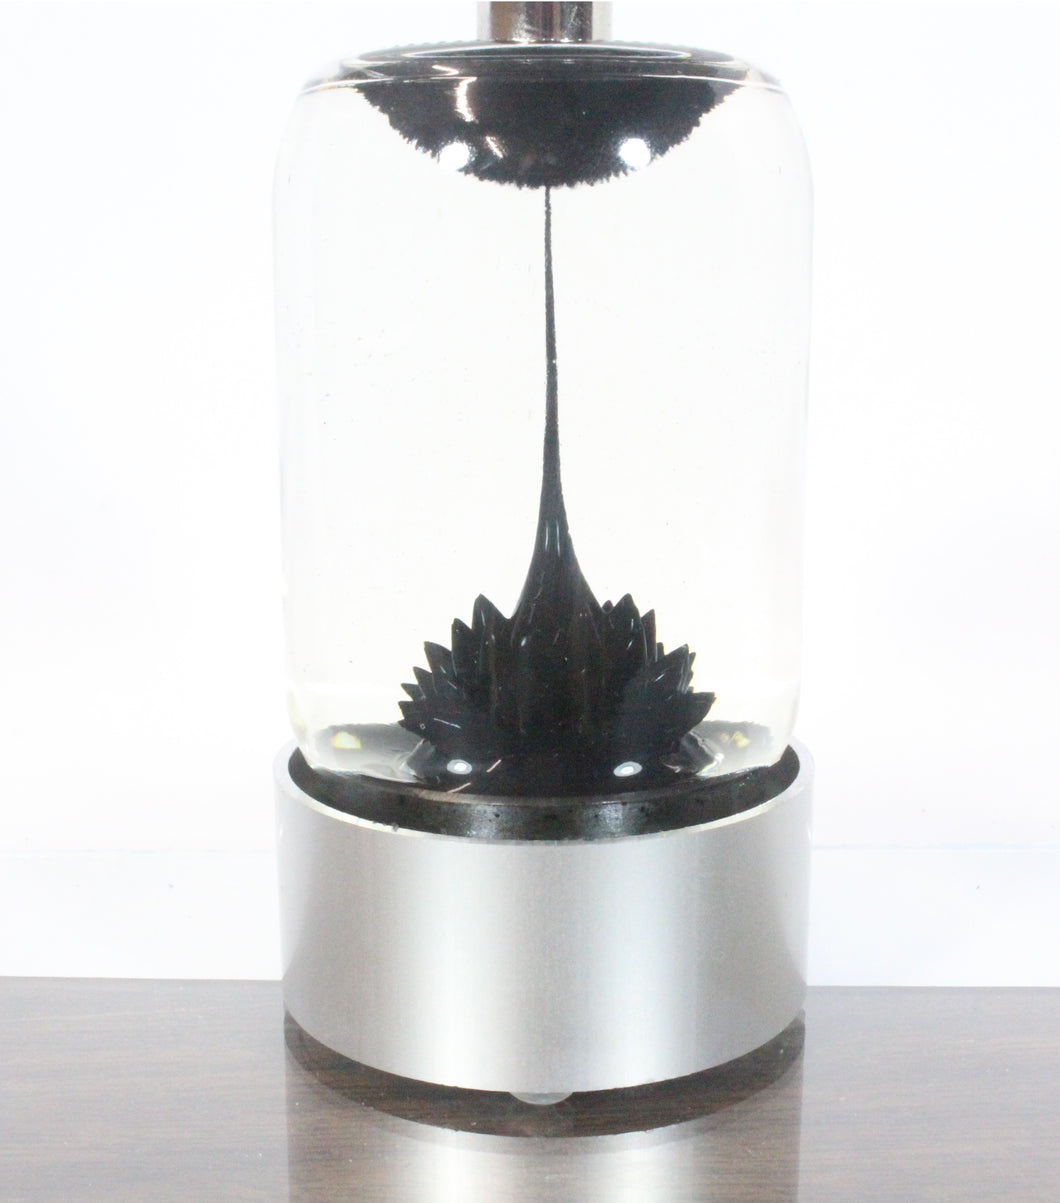 SPIKE ferrofluid display STEAM education product